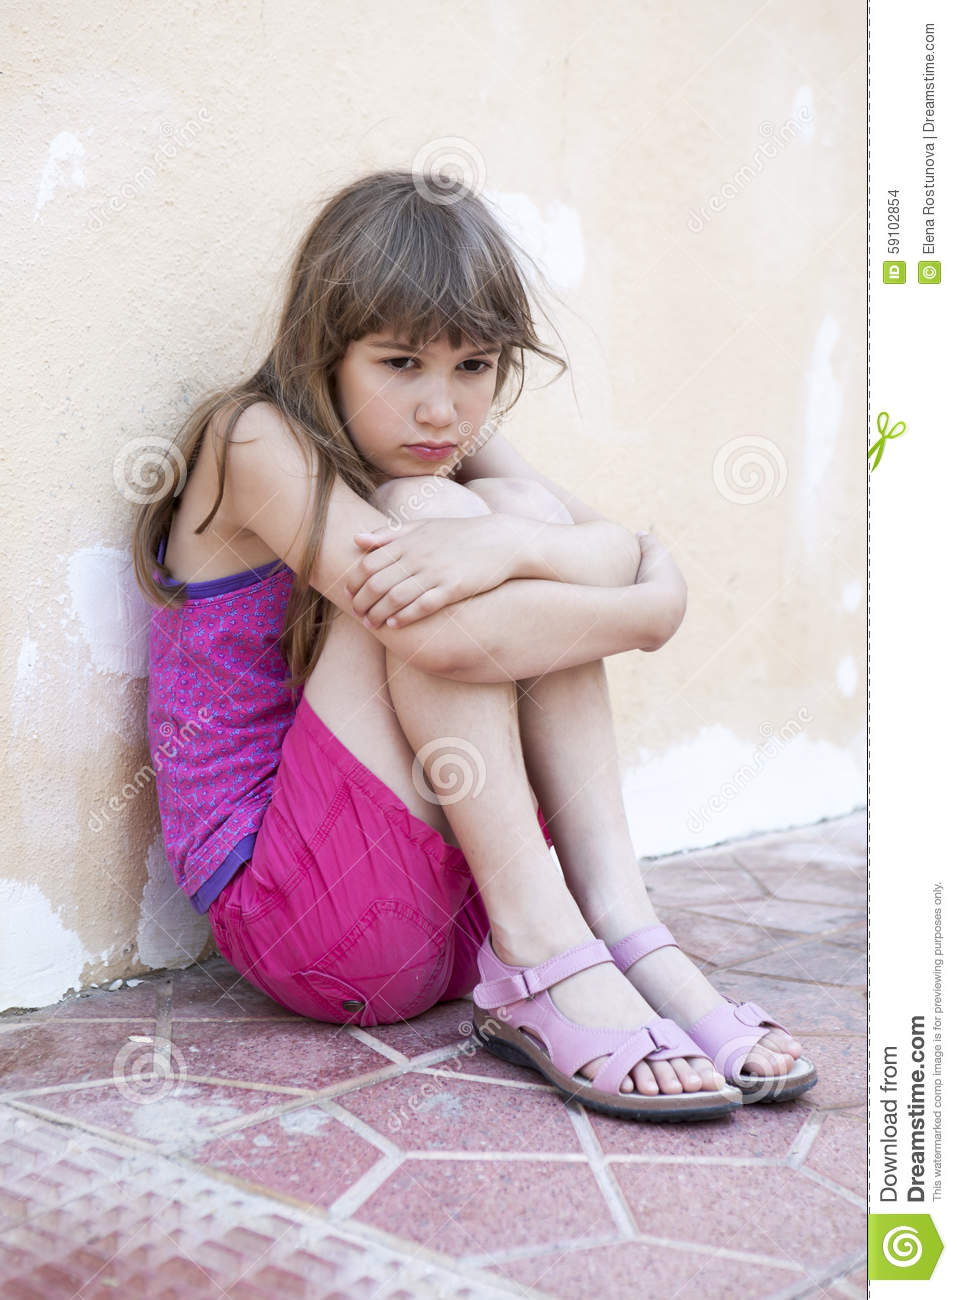 Sad Girl Sitting Alone Outside Stock Photos Sad Girl: Little Sad Girl With Long Hair Sitting Hugging Her Knees